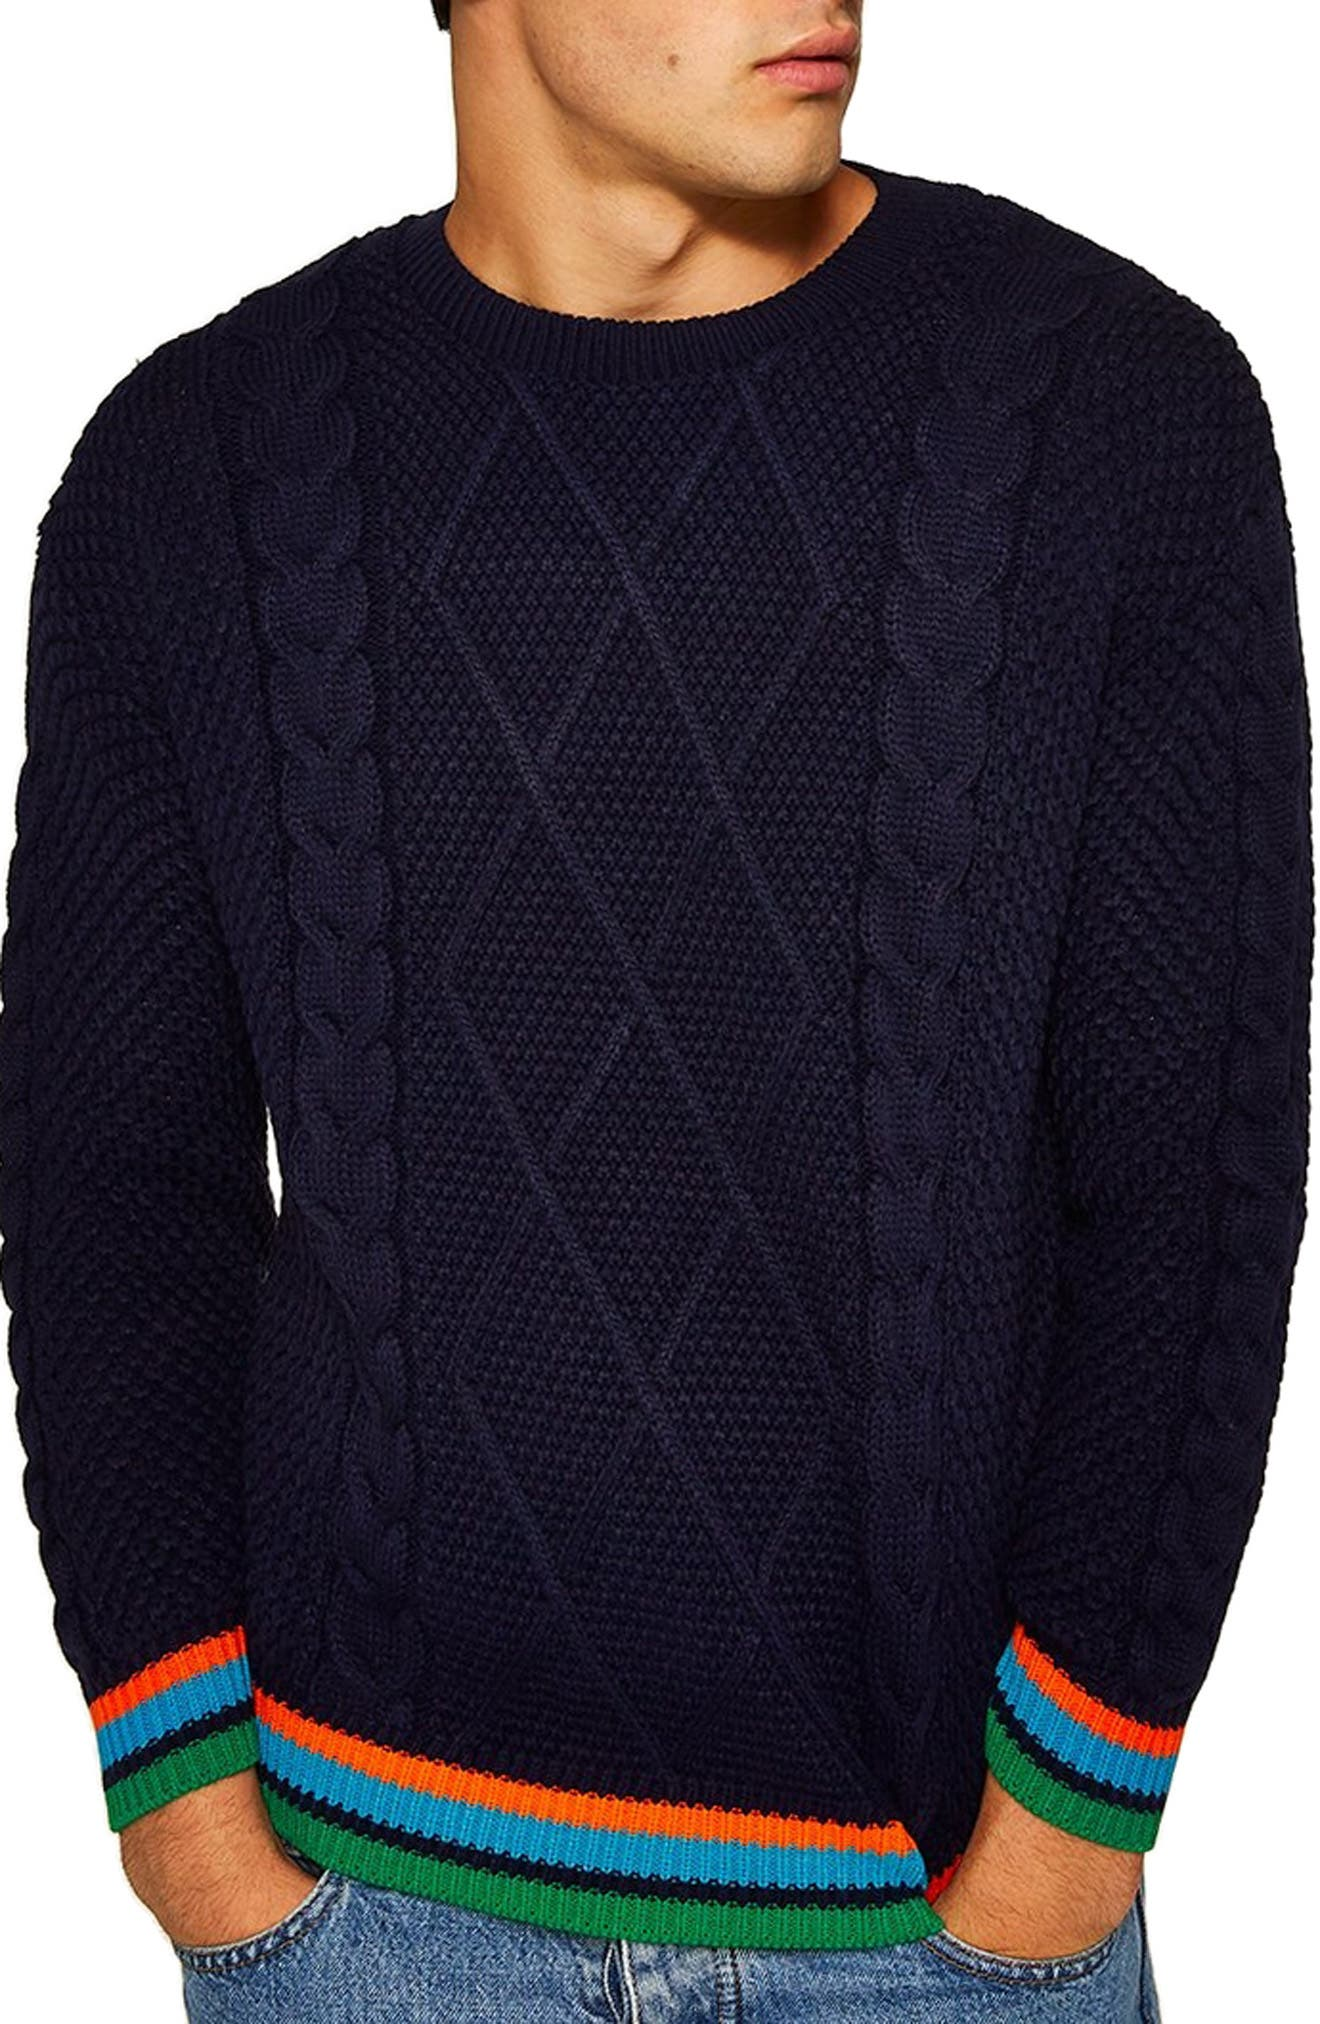 Topman Classic Fit Cable Knit Sweater, Blue